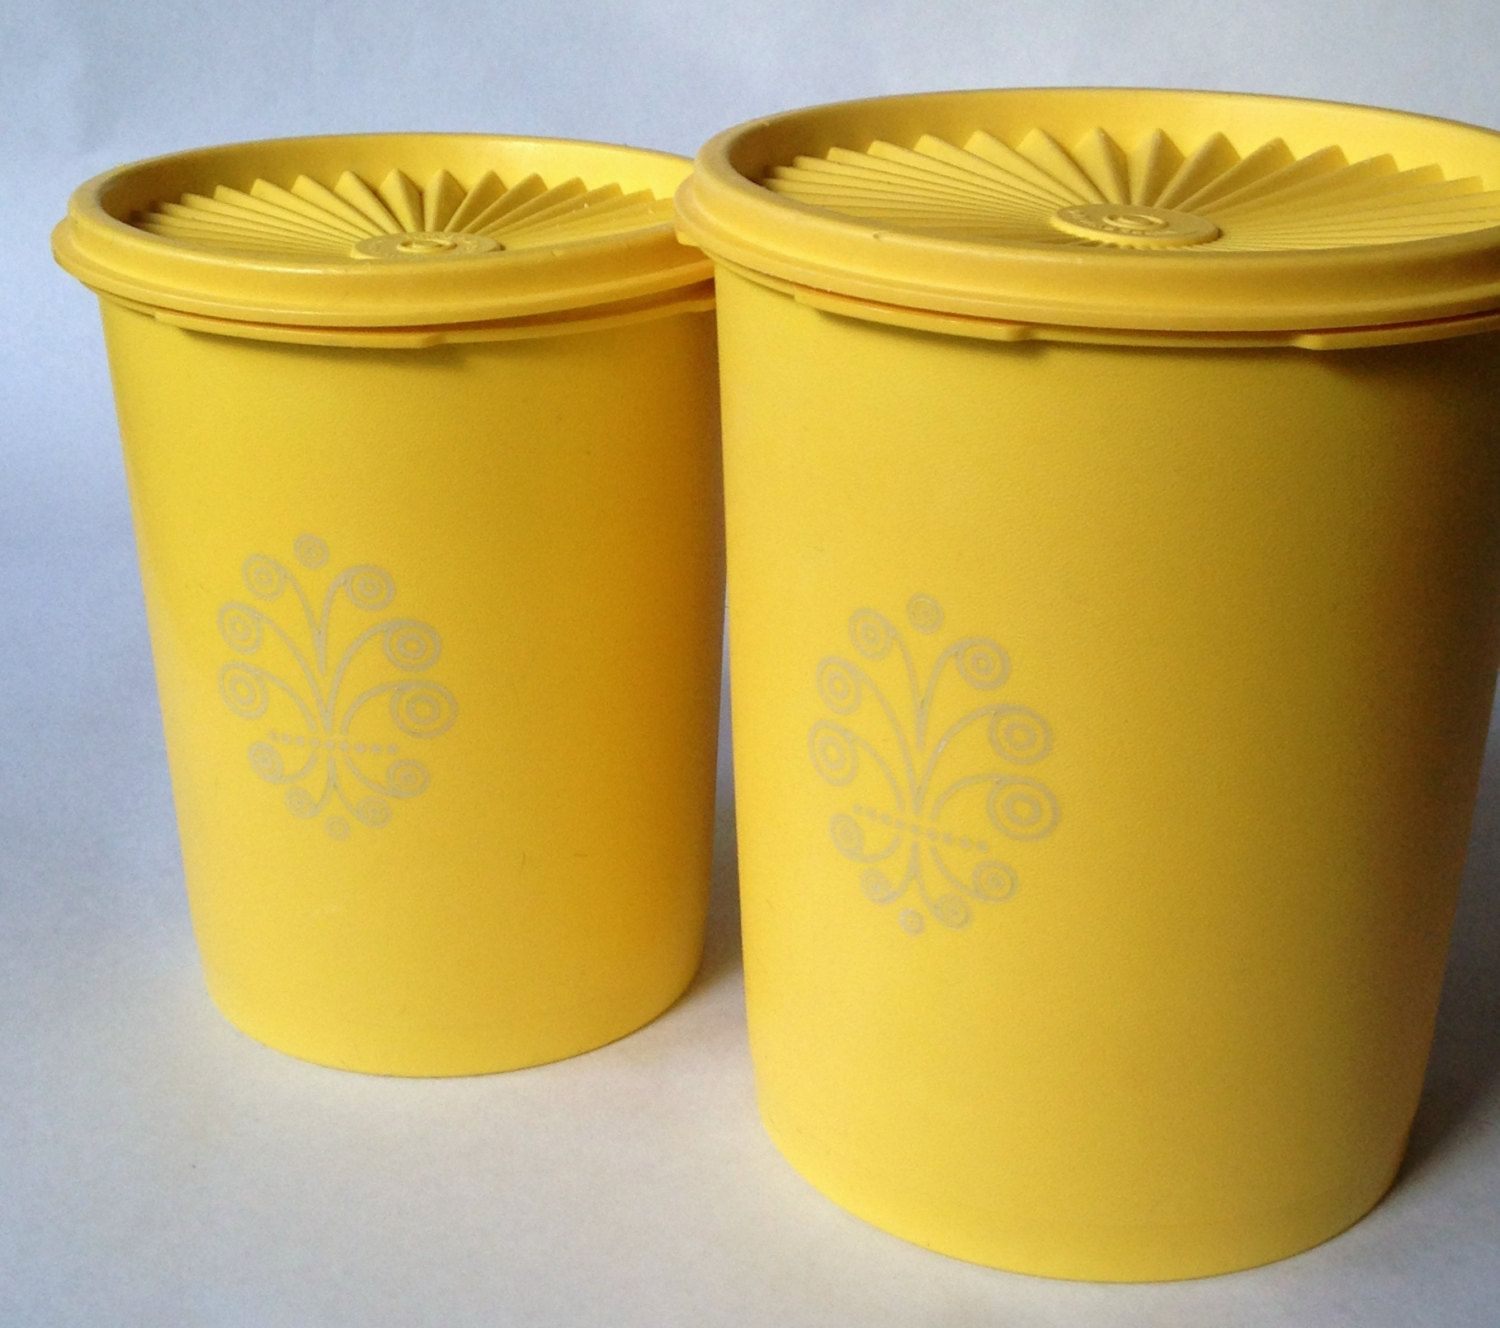 Tupperware 2 Piece Canister Set Vintage Harvest Gold Old Fashioned